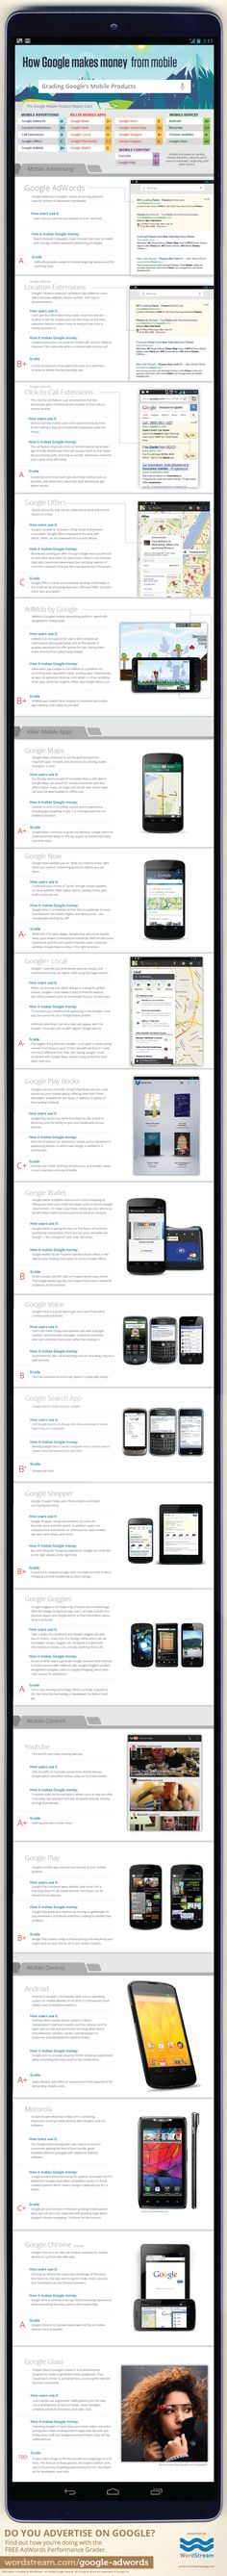 Mobile - Google's Top 20 Mobile Products (and How It Monetizes Them) [Infographic] : MarketingProfs Article